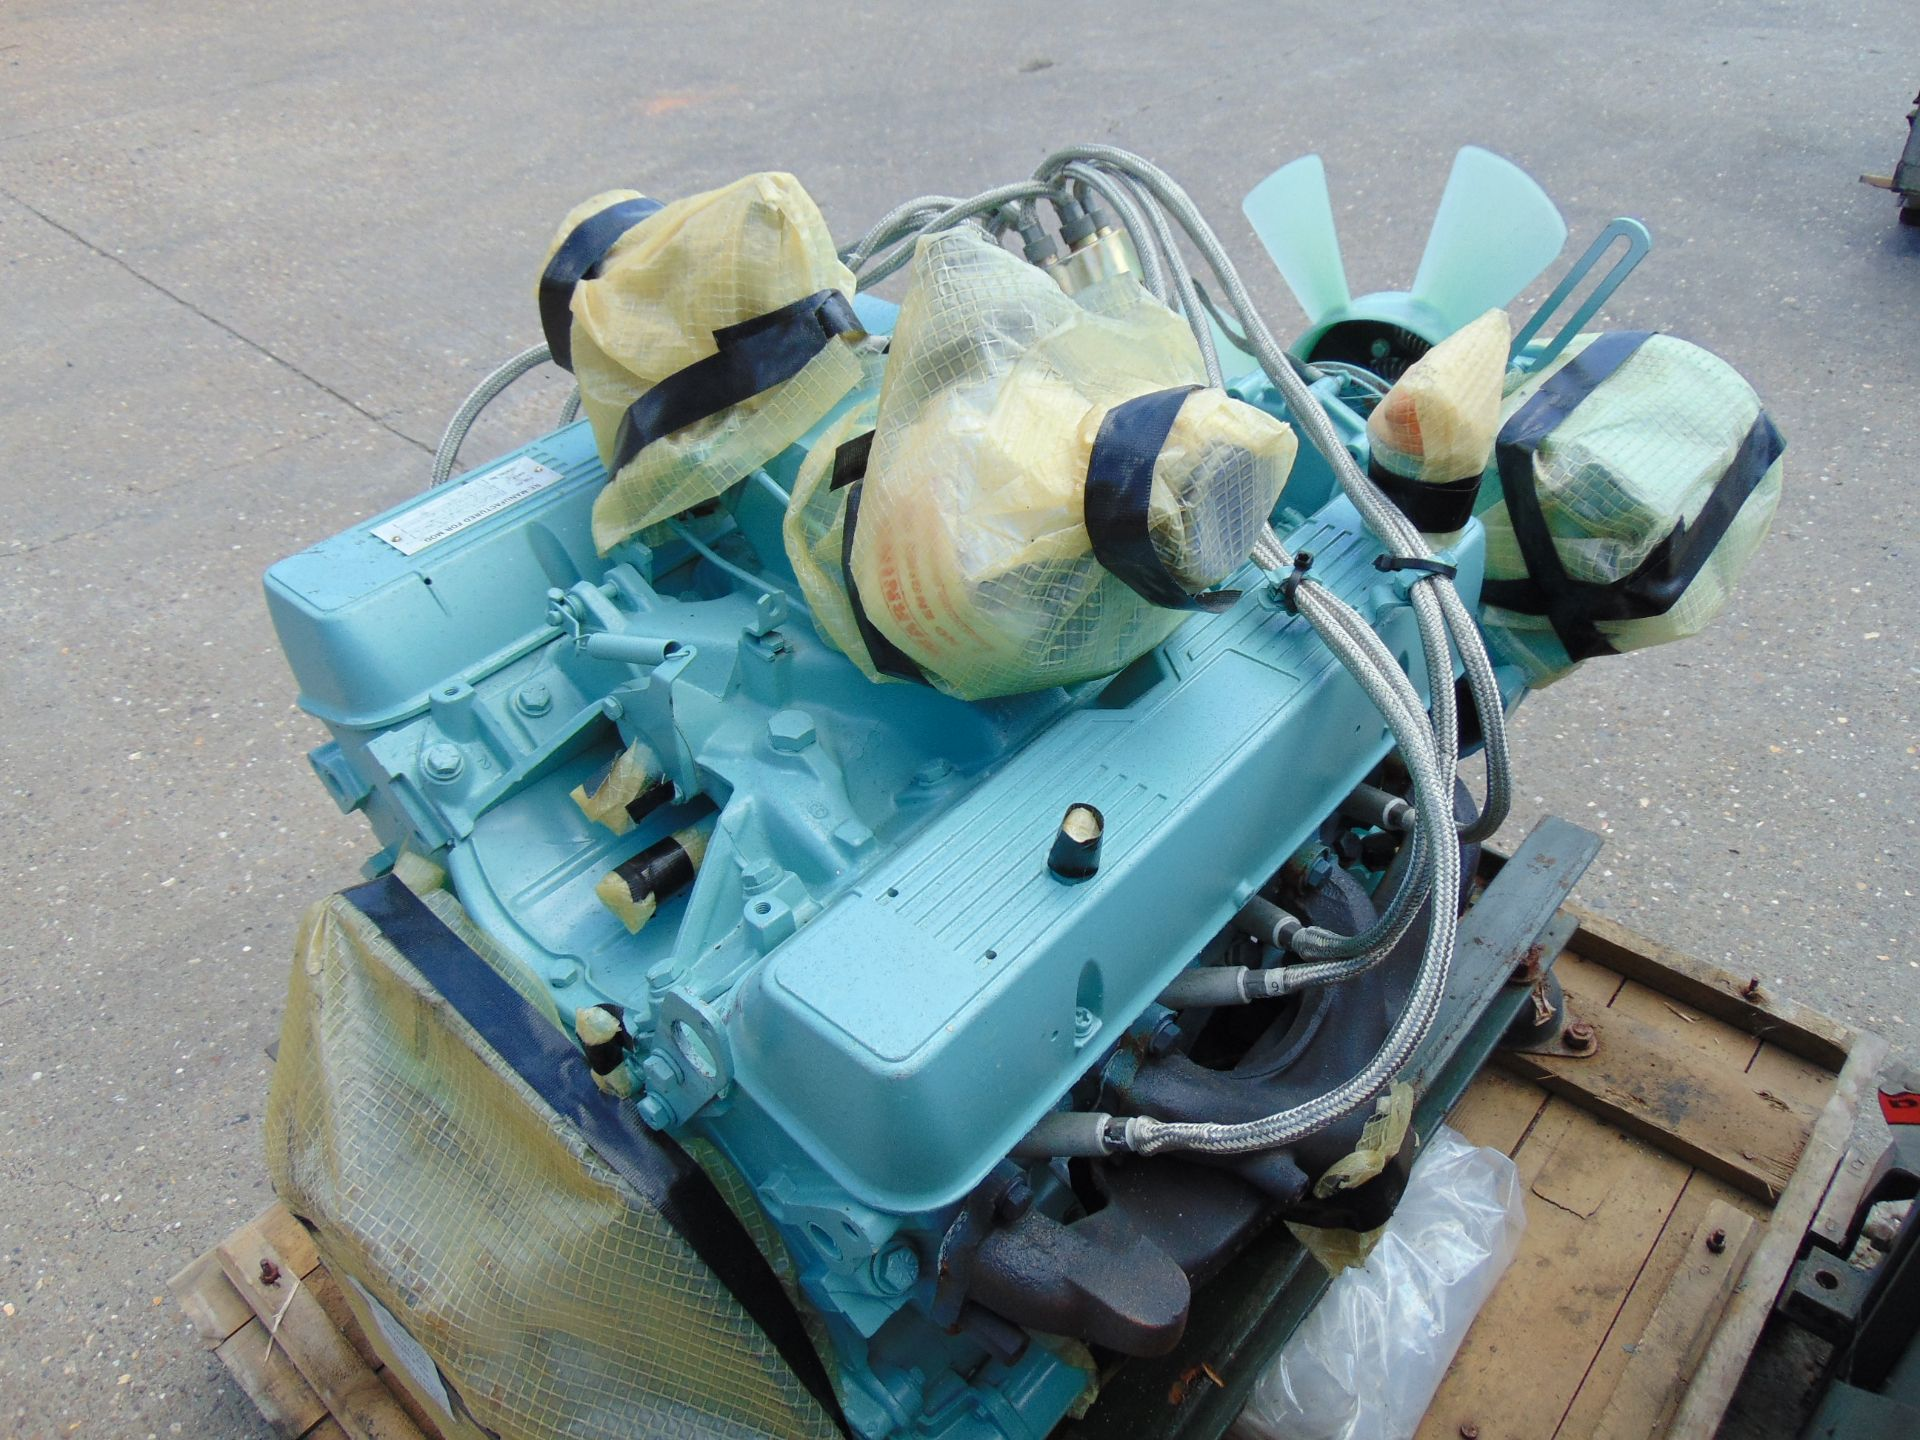 Lot 32 - A1 Reconditioned Land Rover Snatch 3.5 V8 Petrol Engine